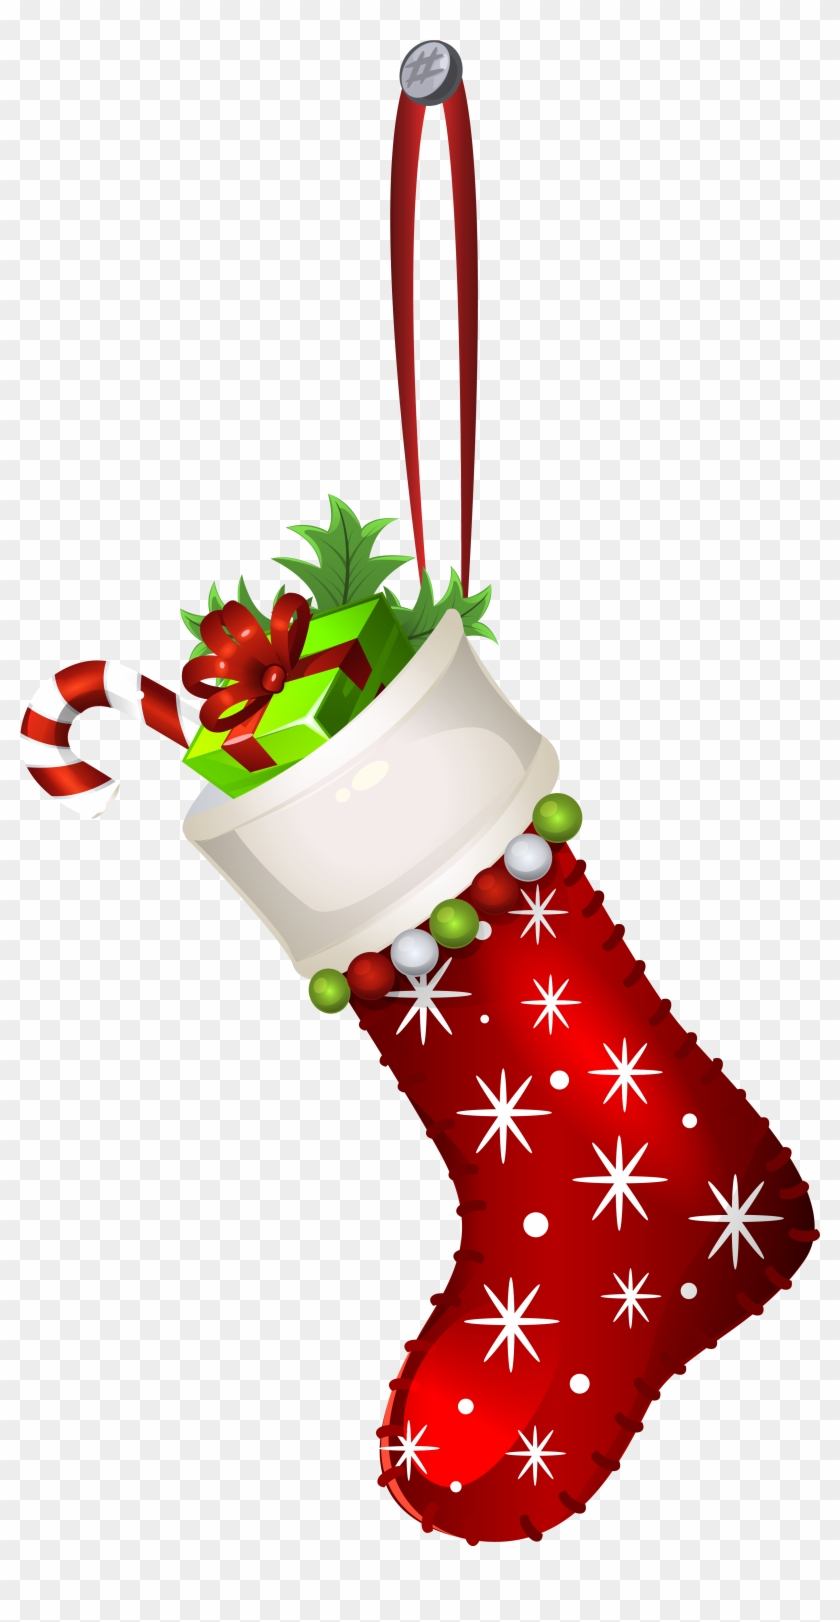 Red Christmas Stocking Transparent Png Clip Art Image - Christmas Stocking Png #11454